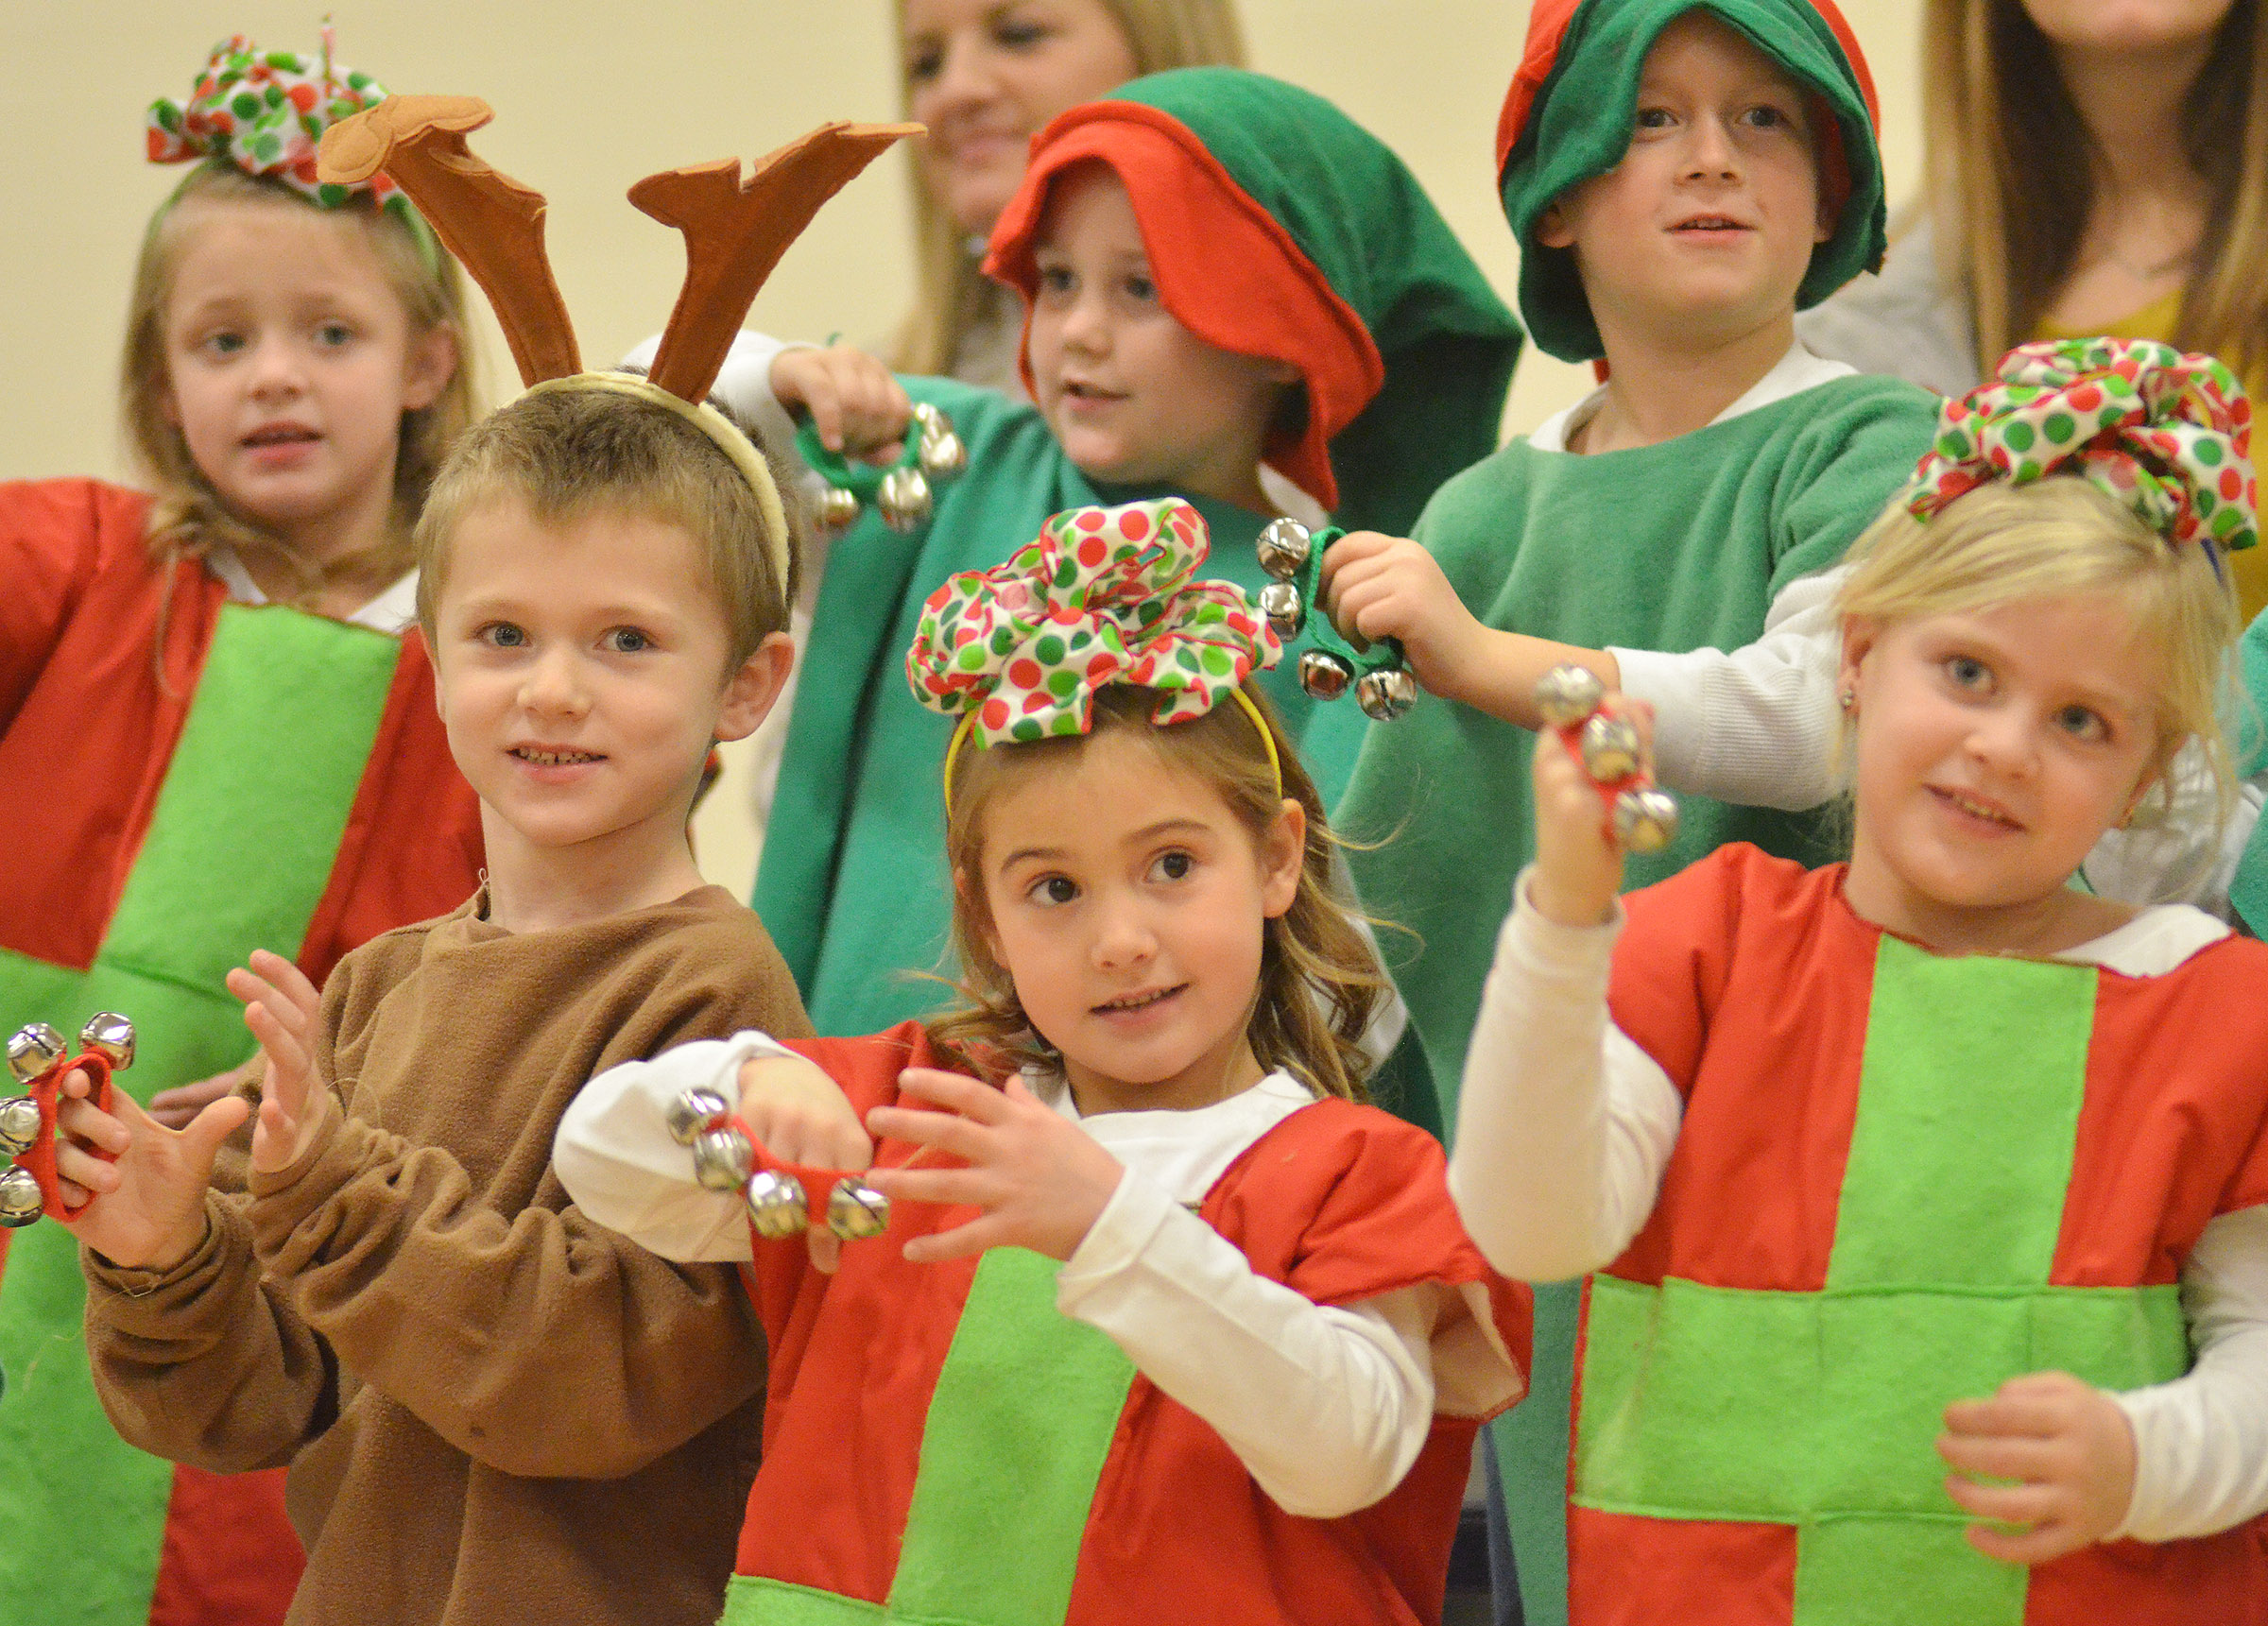 CES kindergarteners, from left, Nicholas Wilson, Blakely Gray and Remi Petett sing and dance. In back are Aliyah Garrett, Jacob Sandidge and Jacob Parrish.